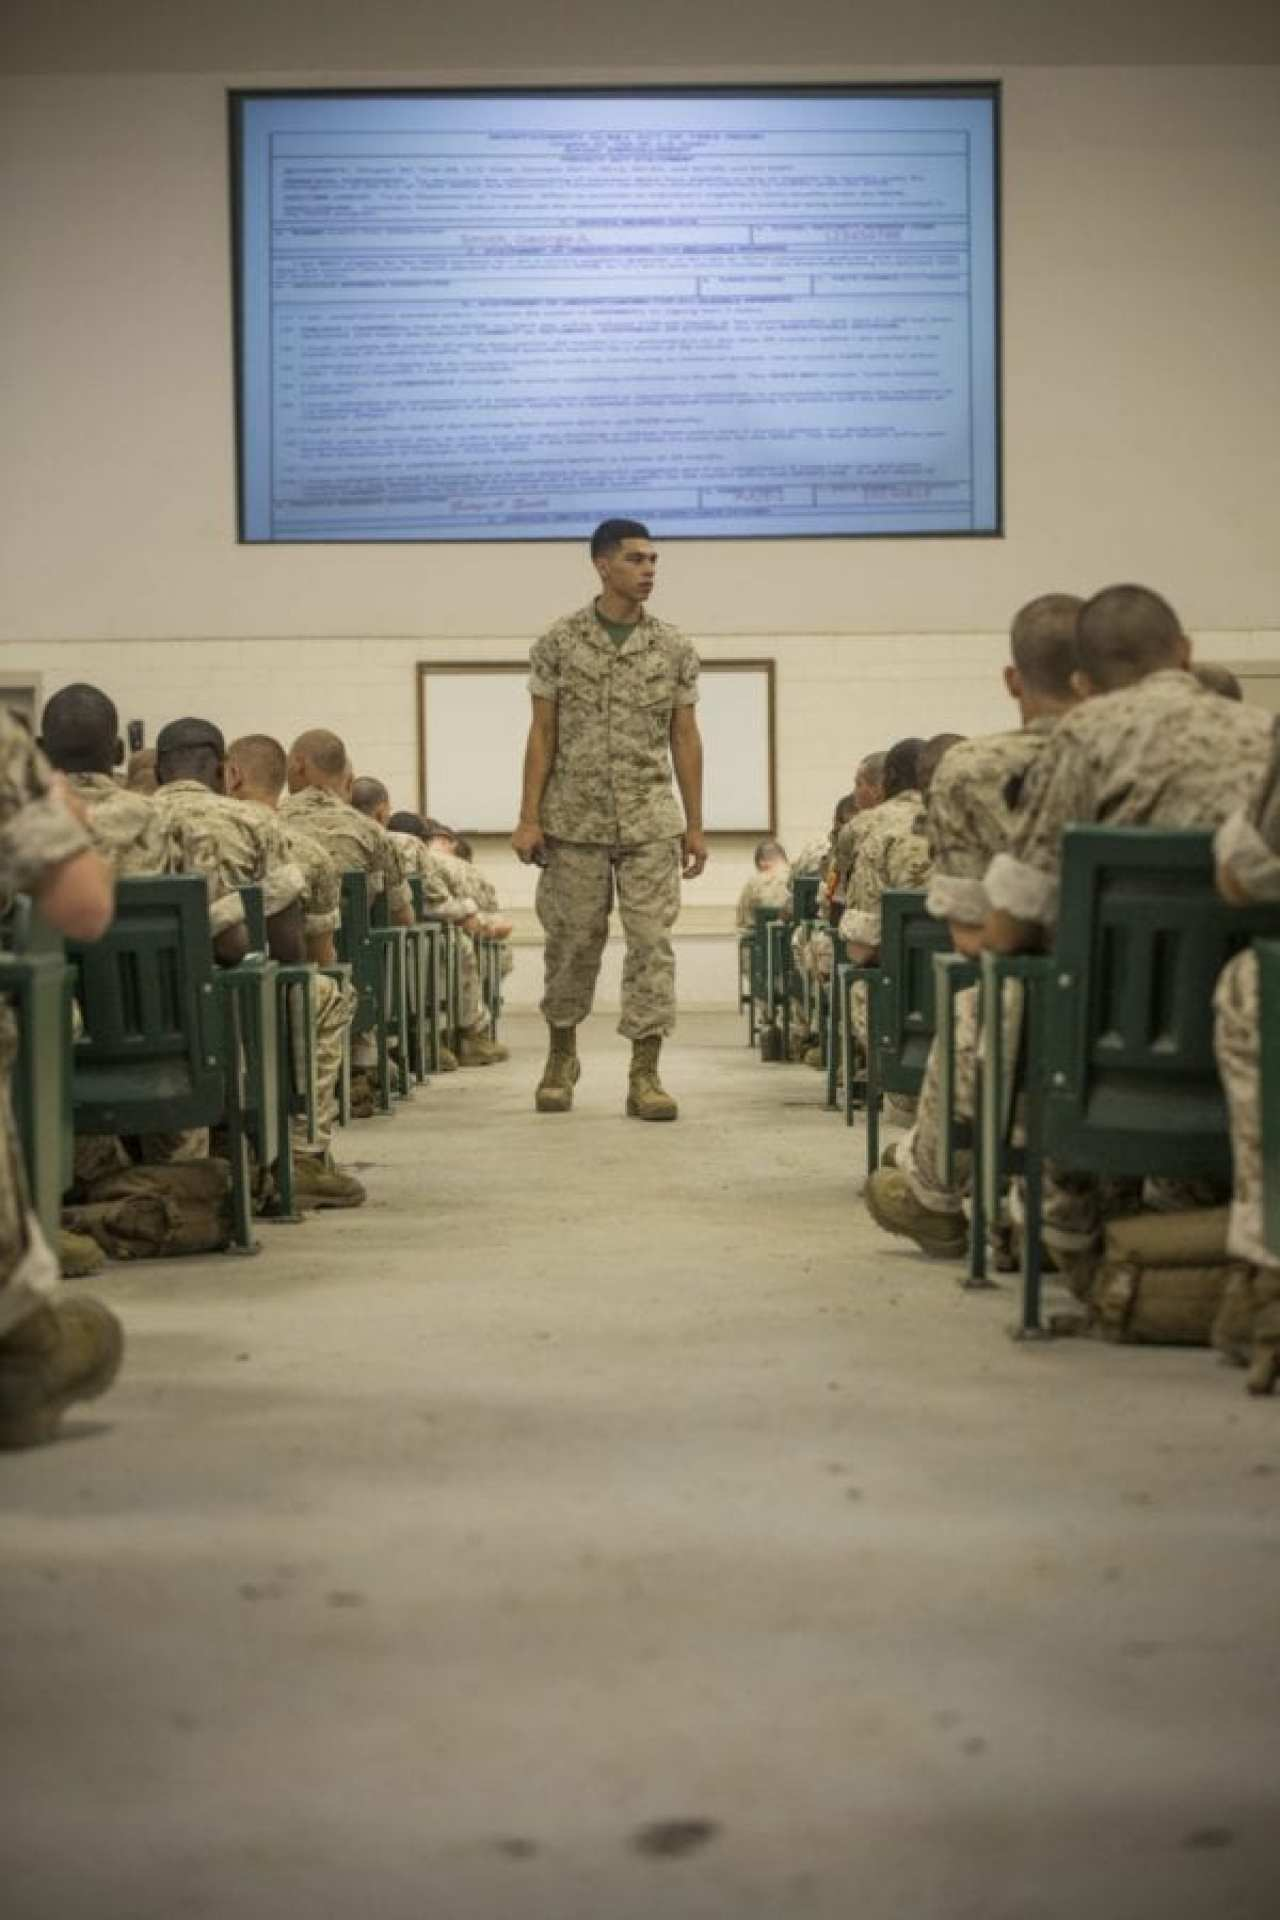 Cpl. Eduardo Villalobos, academic instructor, teaches recruits of Delta Company, 1st Recruit Training Battalion, about the various tuition assistance programs available, such as the Post-9/11 G.I. Bill and the Montgomery G.I. Bill on Aug. 26, 2015, on Parris Island, South Carolina. The class covered the benefits and differences between each G.I. Bill.